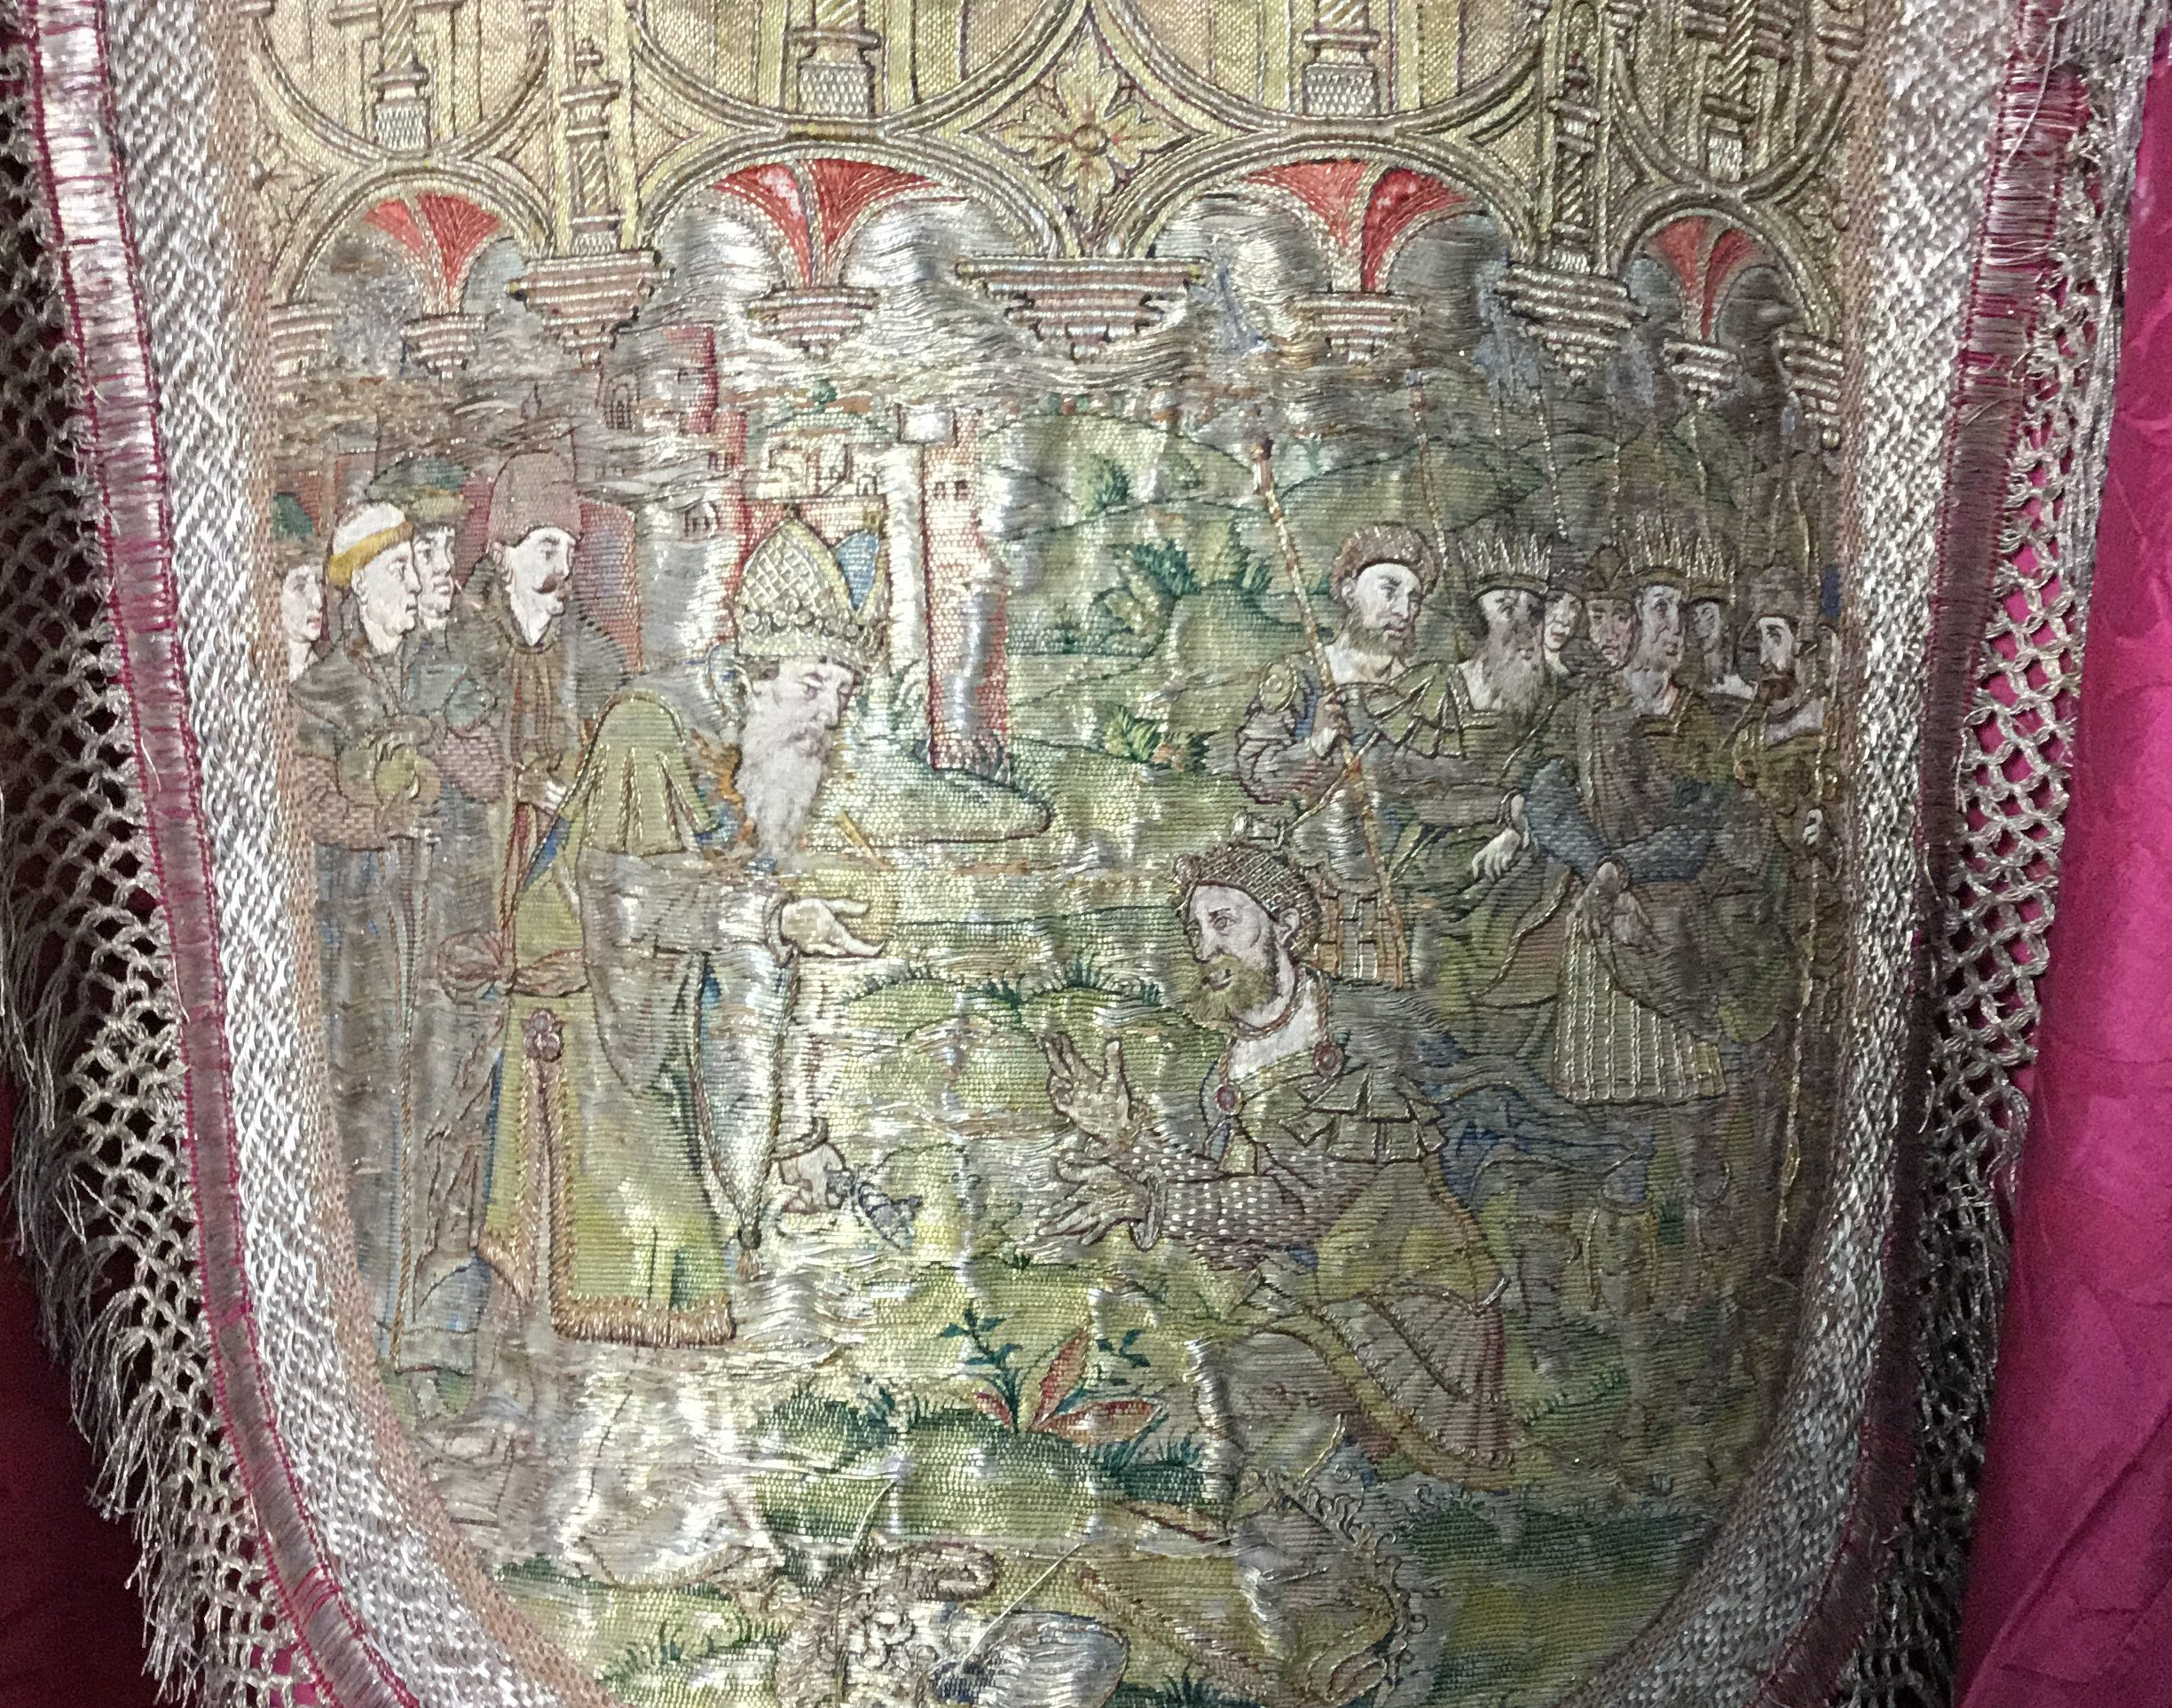 Embroidered religious scene